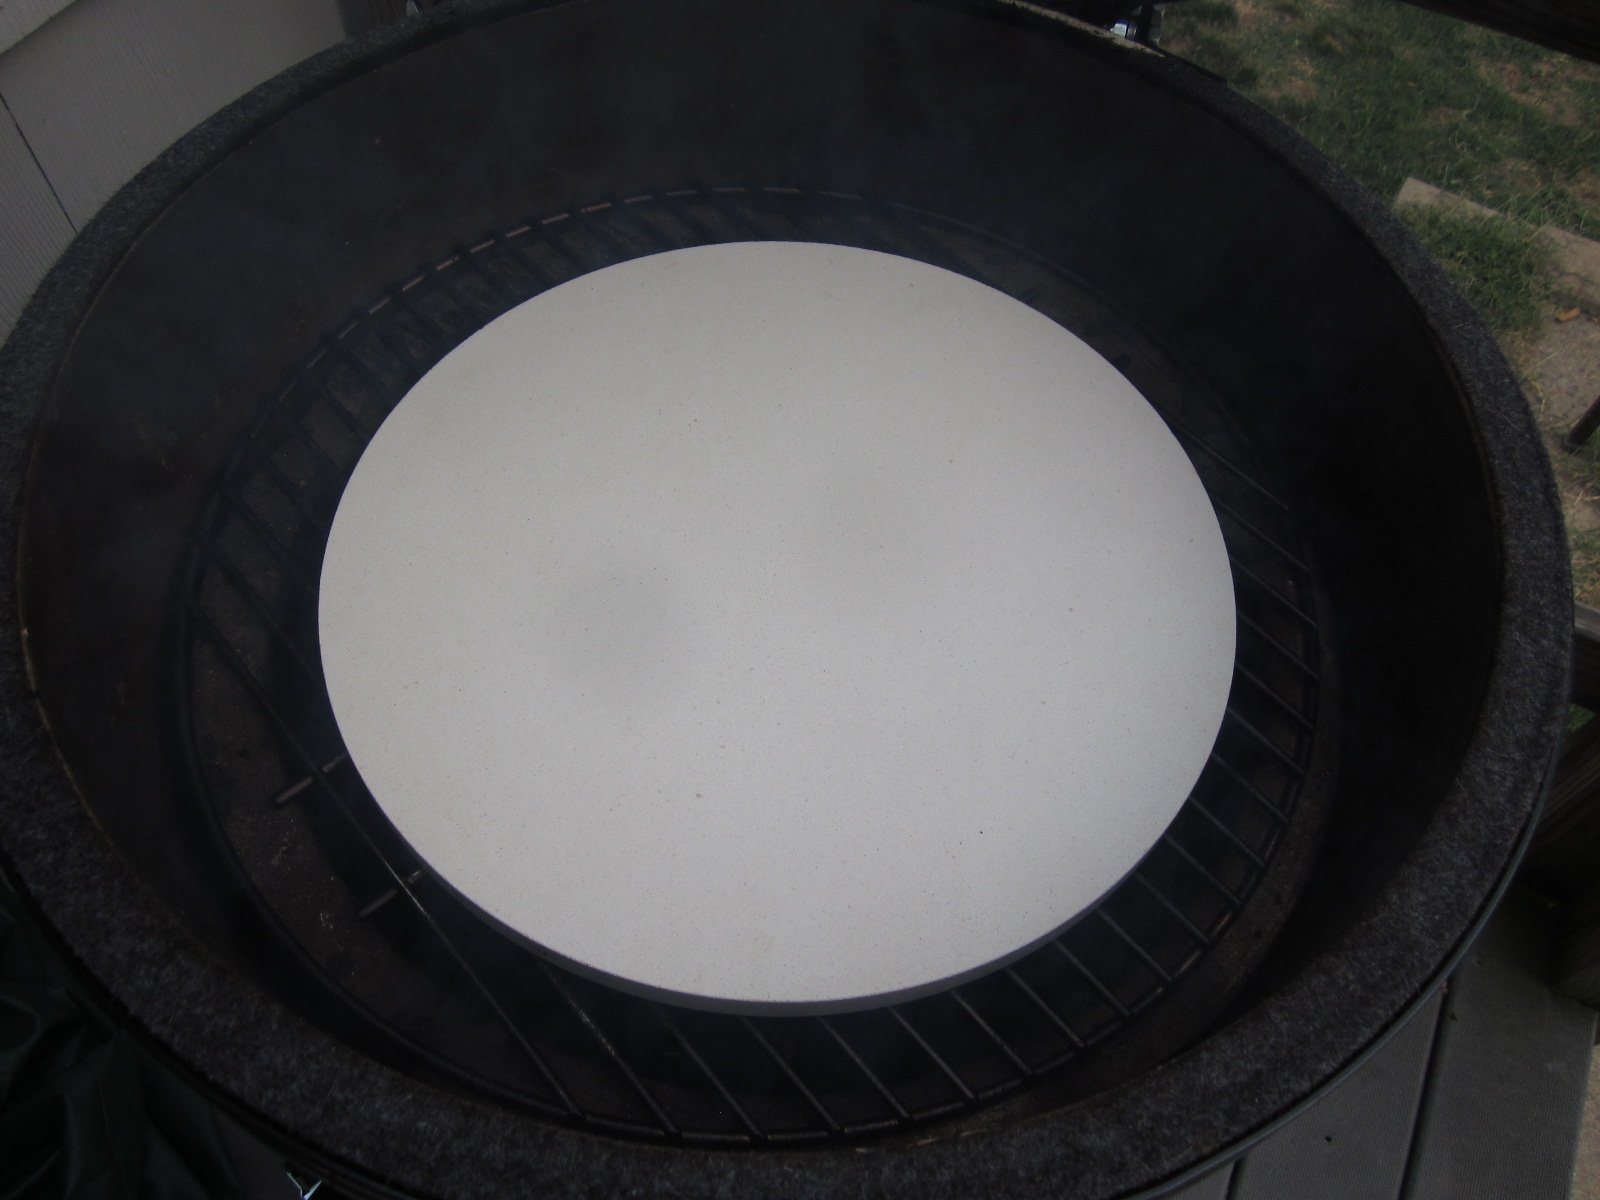 Baking / Pizza Stone THICK 9/16 inch for large Big Green Egg Grill & Other Kamado Grills